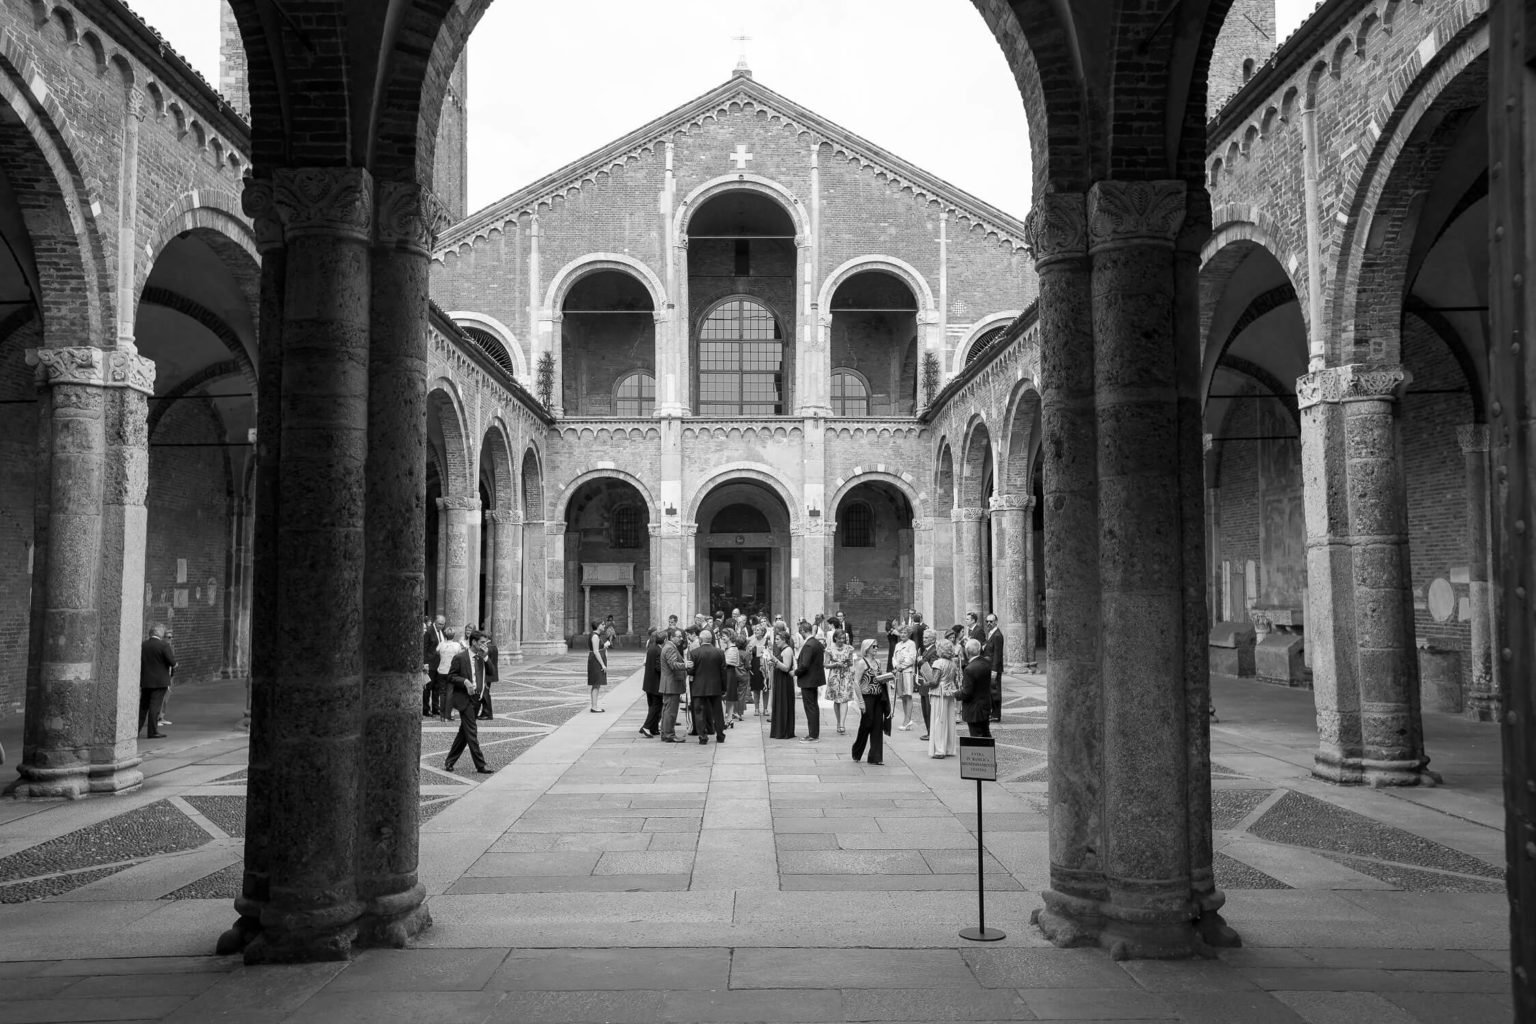 Spouses and guests exchange greetings at the Basilica of Sant'Ambrogio in Milan, a wedding photo by Nino Lombardo